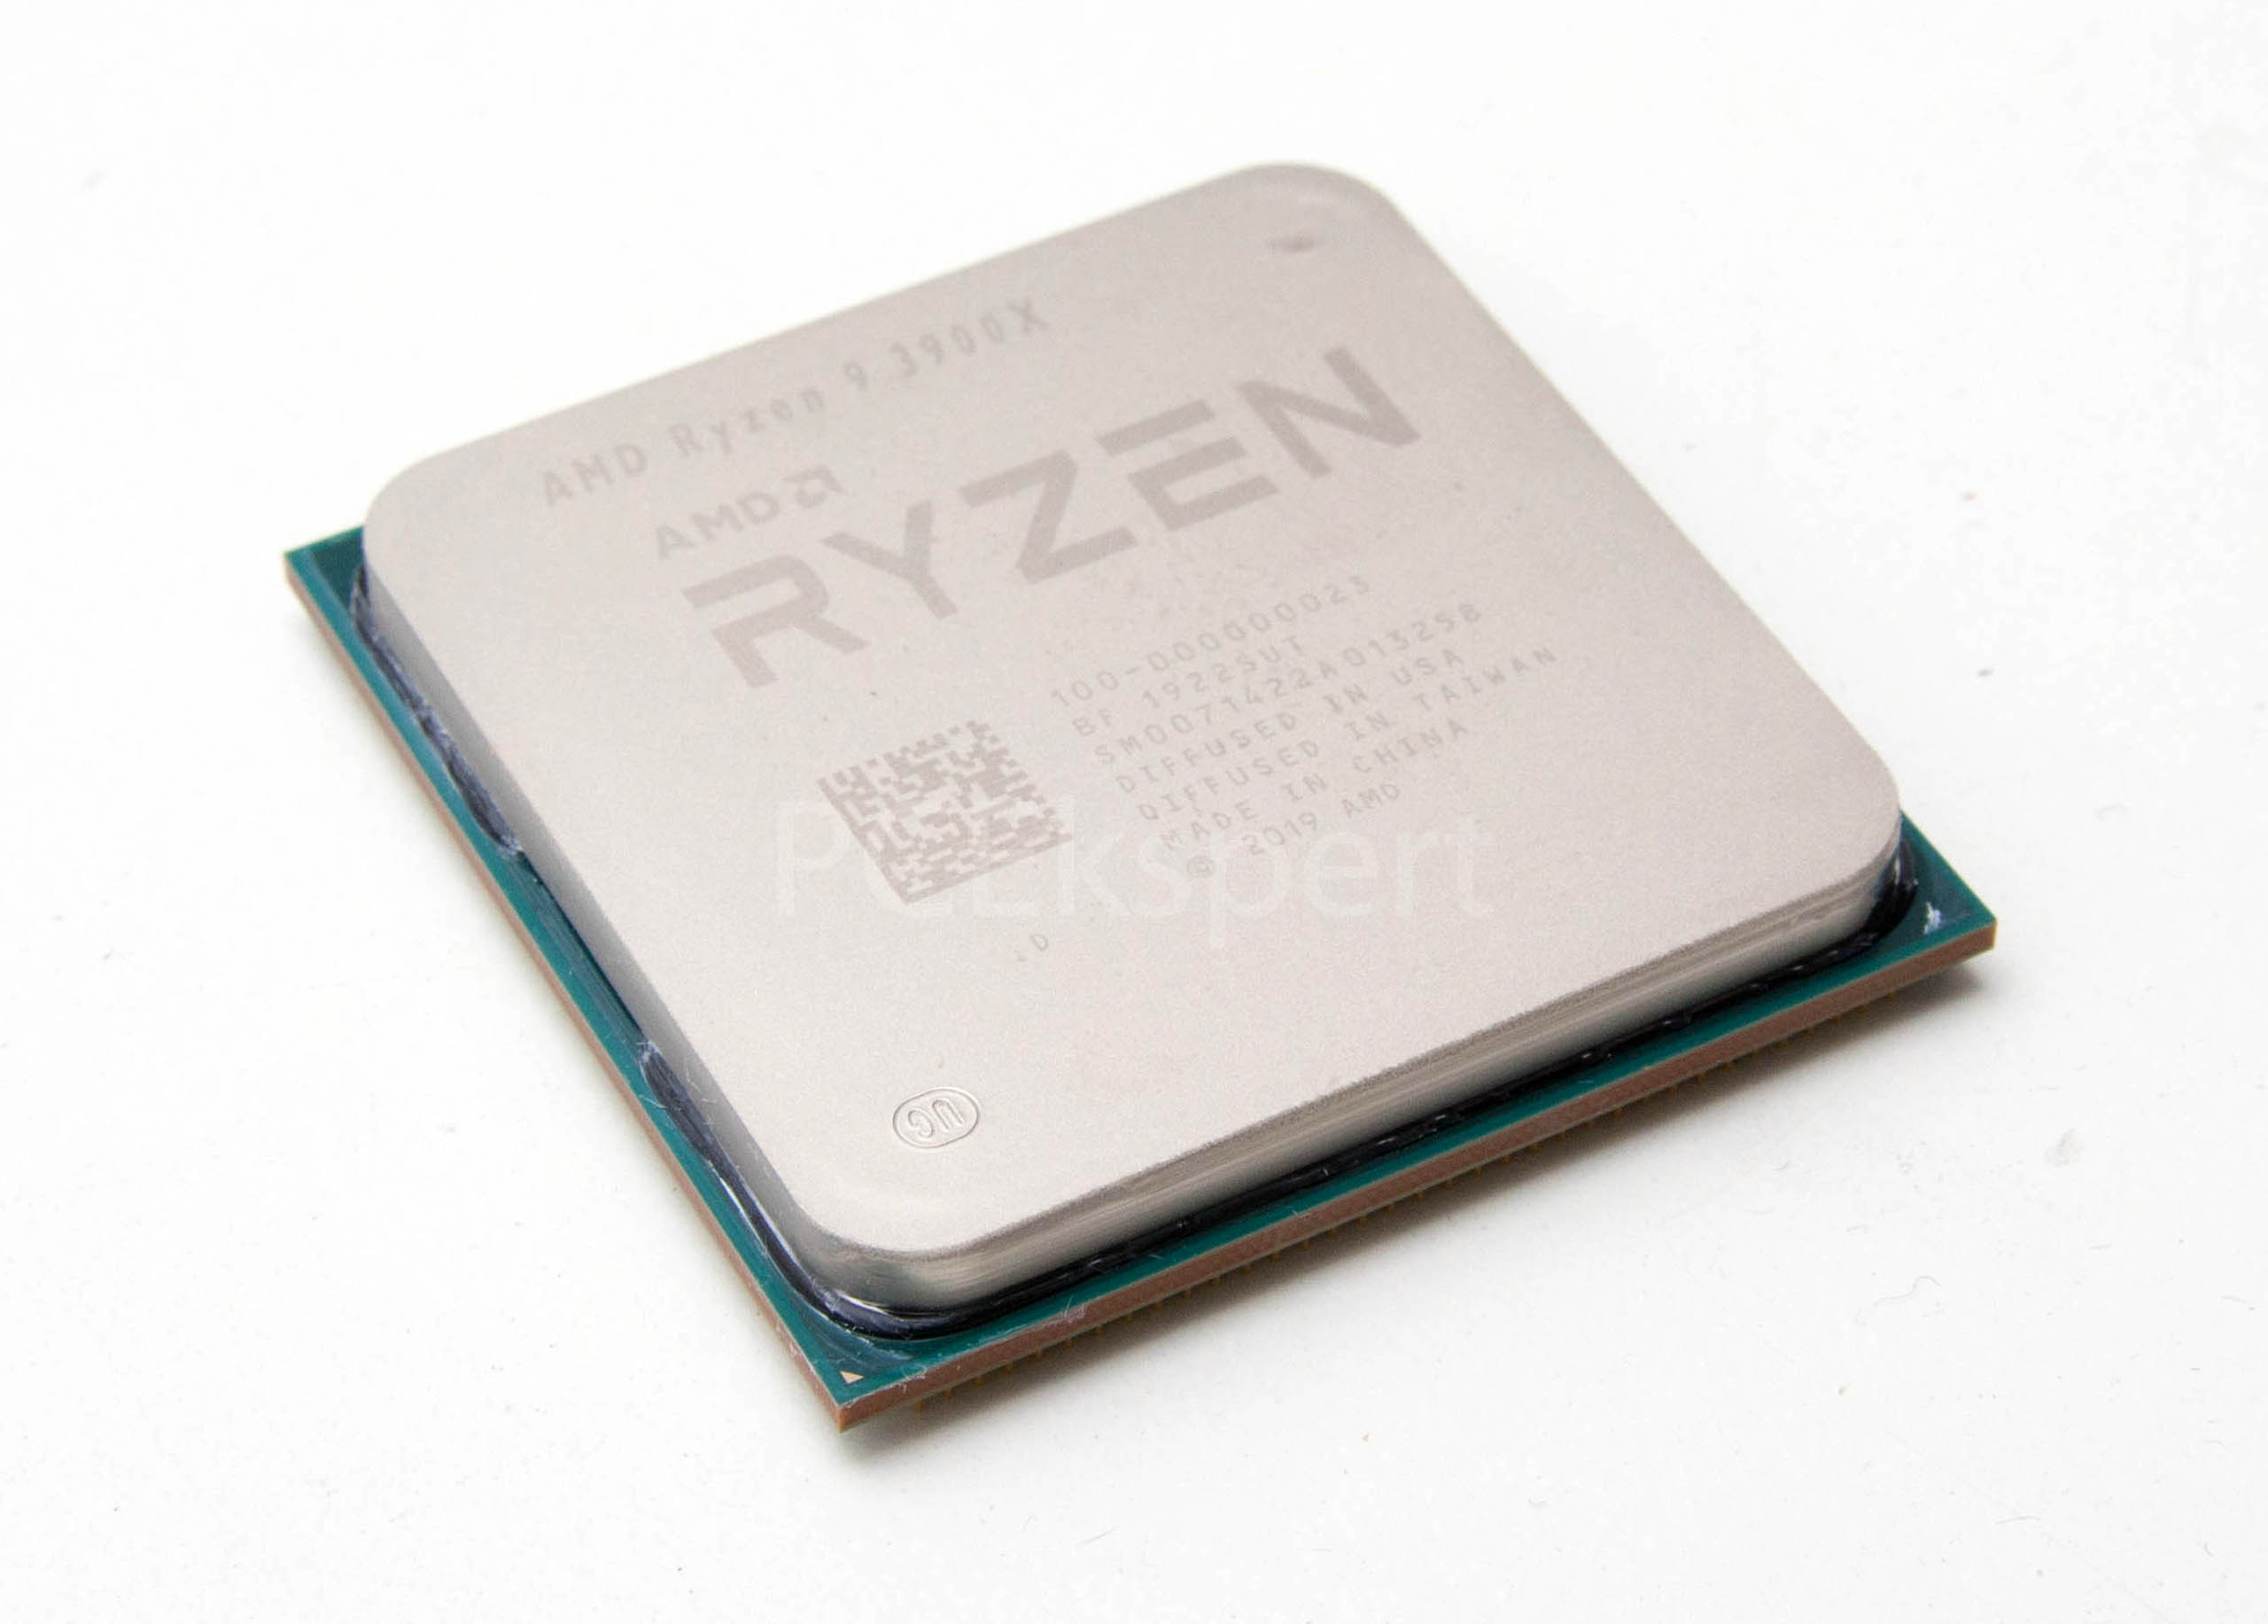 AMD Zen 3 procesori maksimiziraju performanse do 15%?